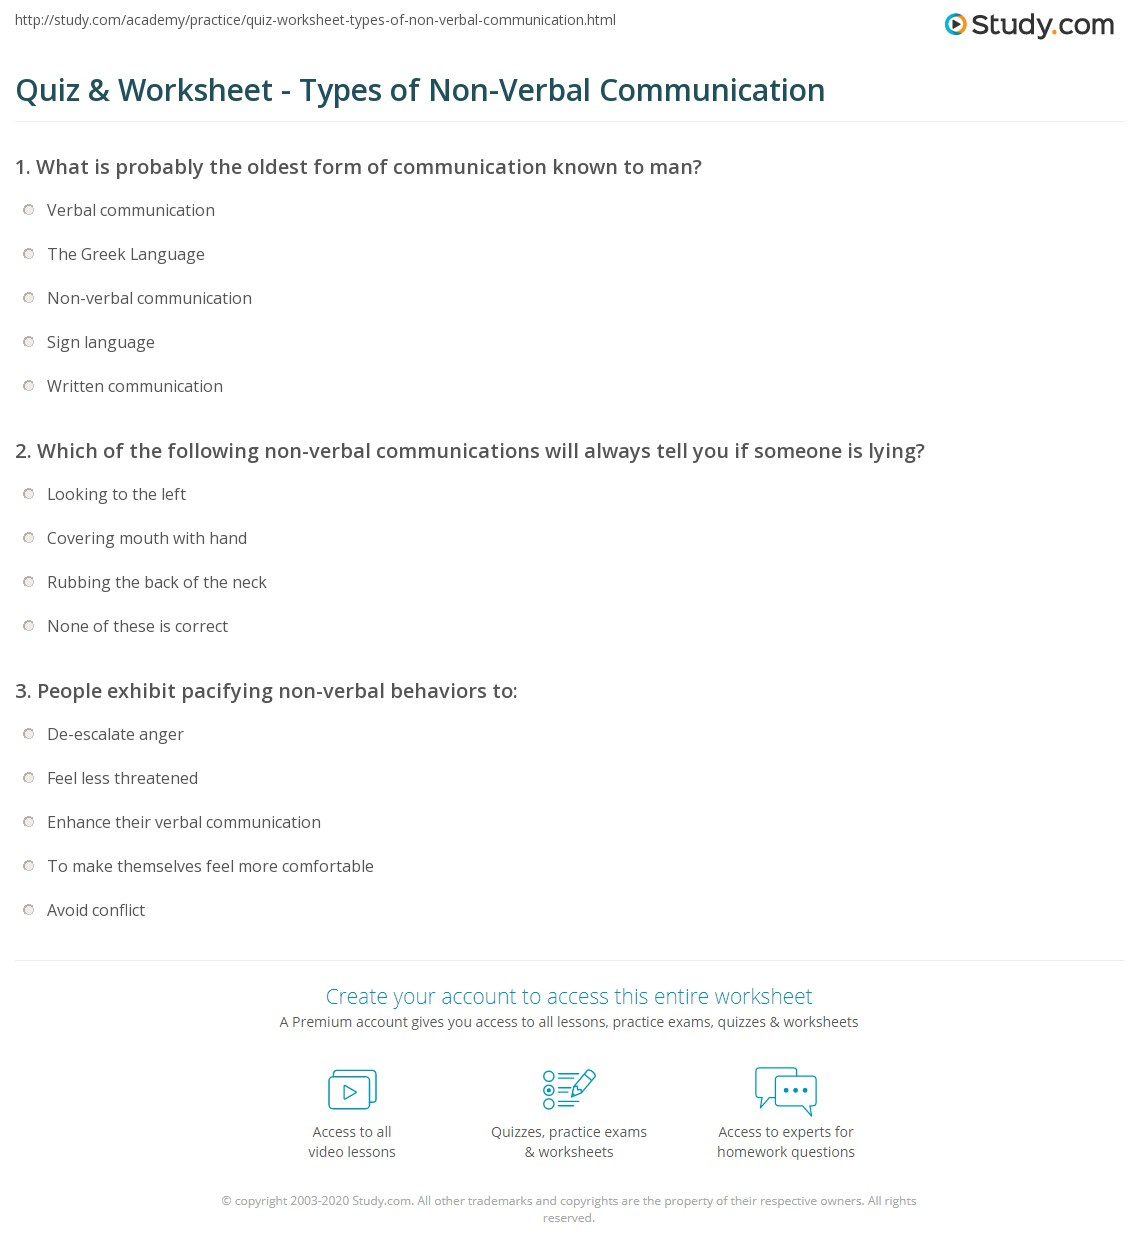 Quiz & Worksheet - Types of Non-Verbal Communication | Study.com